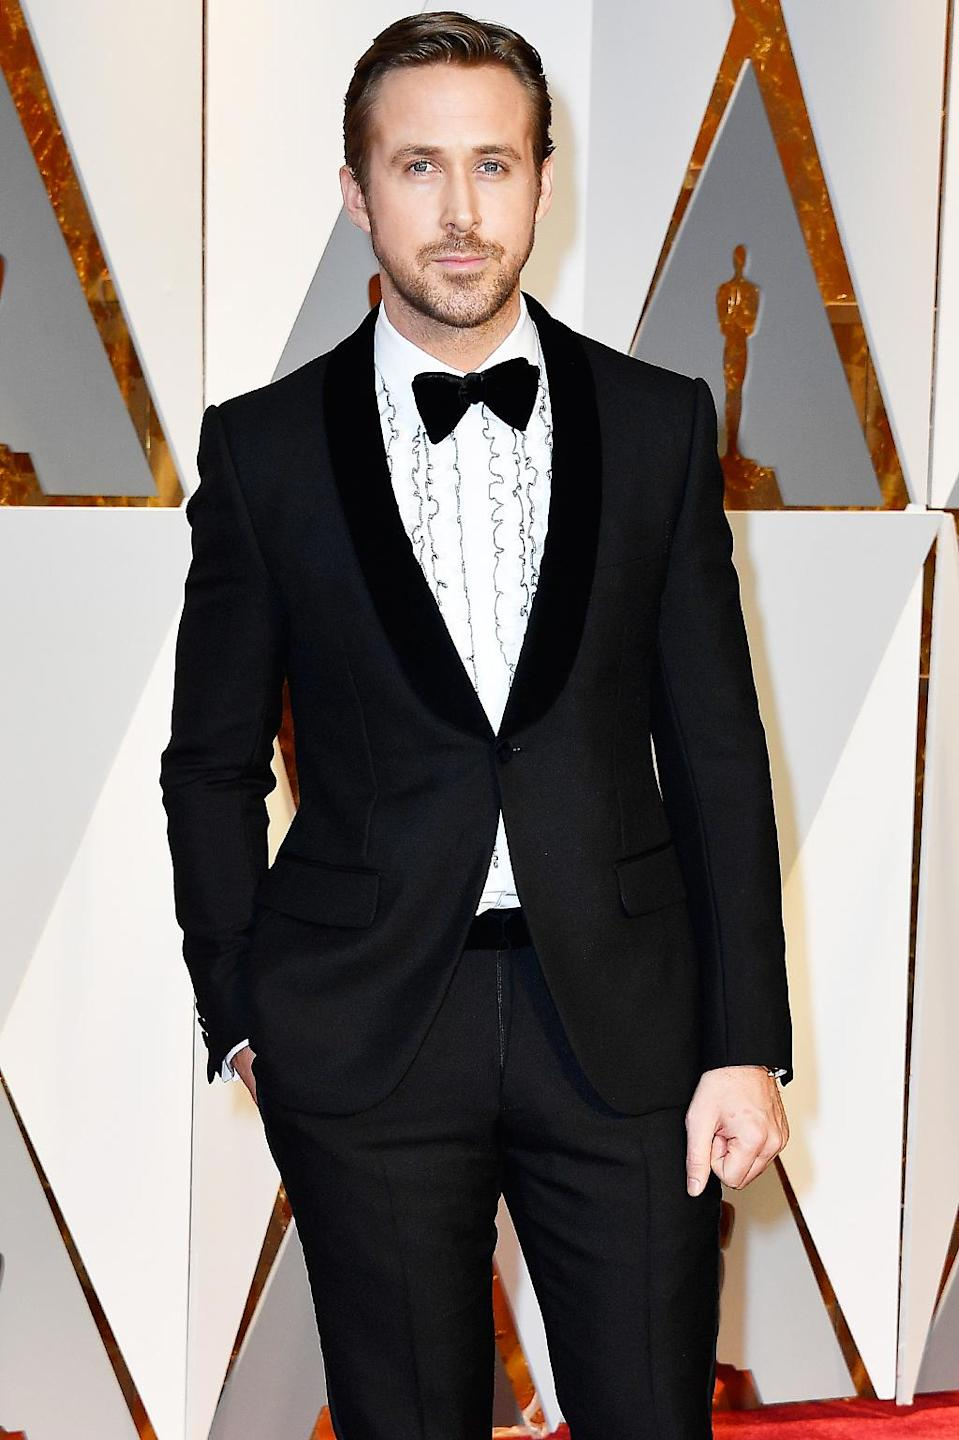 """<p>Ryan Gosling attends the 89th Annual Academy Awards on Feb. 26, 2017. (Photo by Frazer Harrison/Getty Images)<br><br><a rel=""""nofollow"""" href=""""https://www.yahoo.com/style/oscars-2017-vote-for-the-best-and-worst-dressed-225105125.html"""" data-ylk=""""slk:Go here to vote for best and worst dressed.;outcm:mb_qualified_link;_E:mb_qualified_link;ct:story;"""" class=""""link rapid-noclick-resp yahoo-link"""">Go here to vote for best and worst dressed.</a> </p>"""